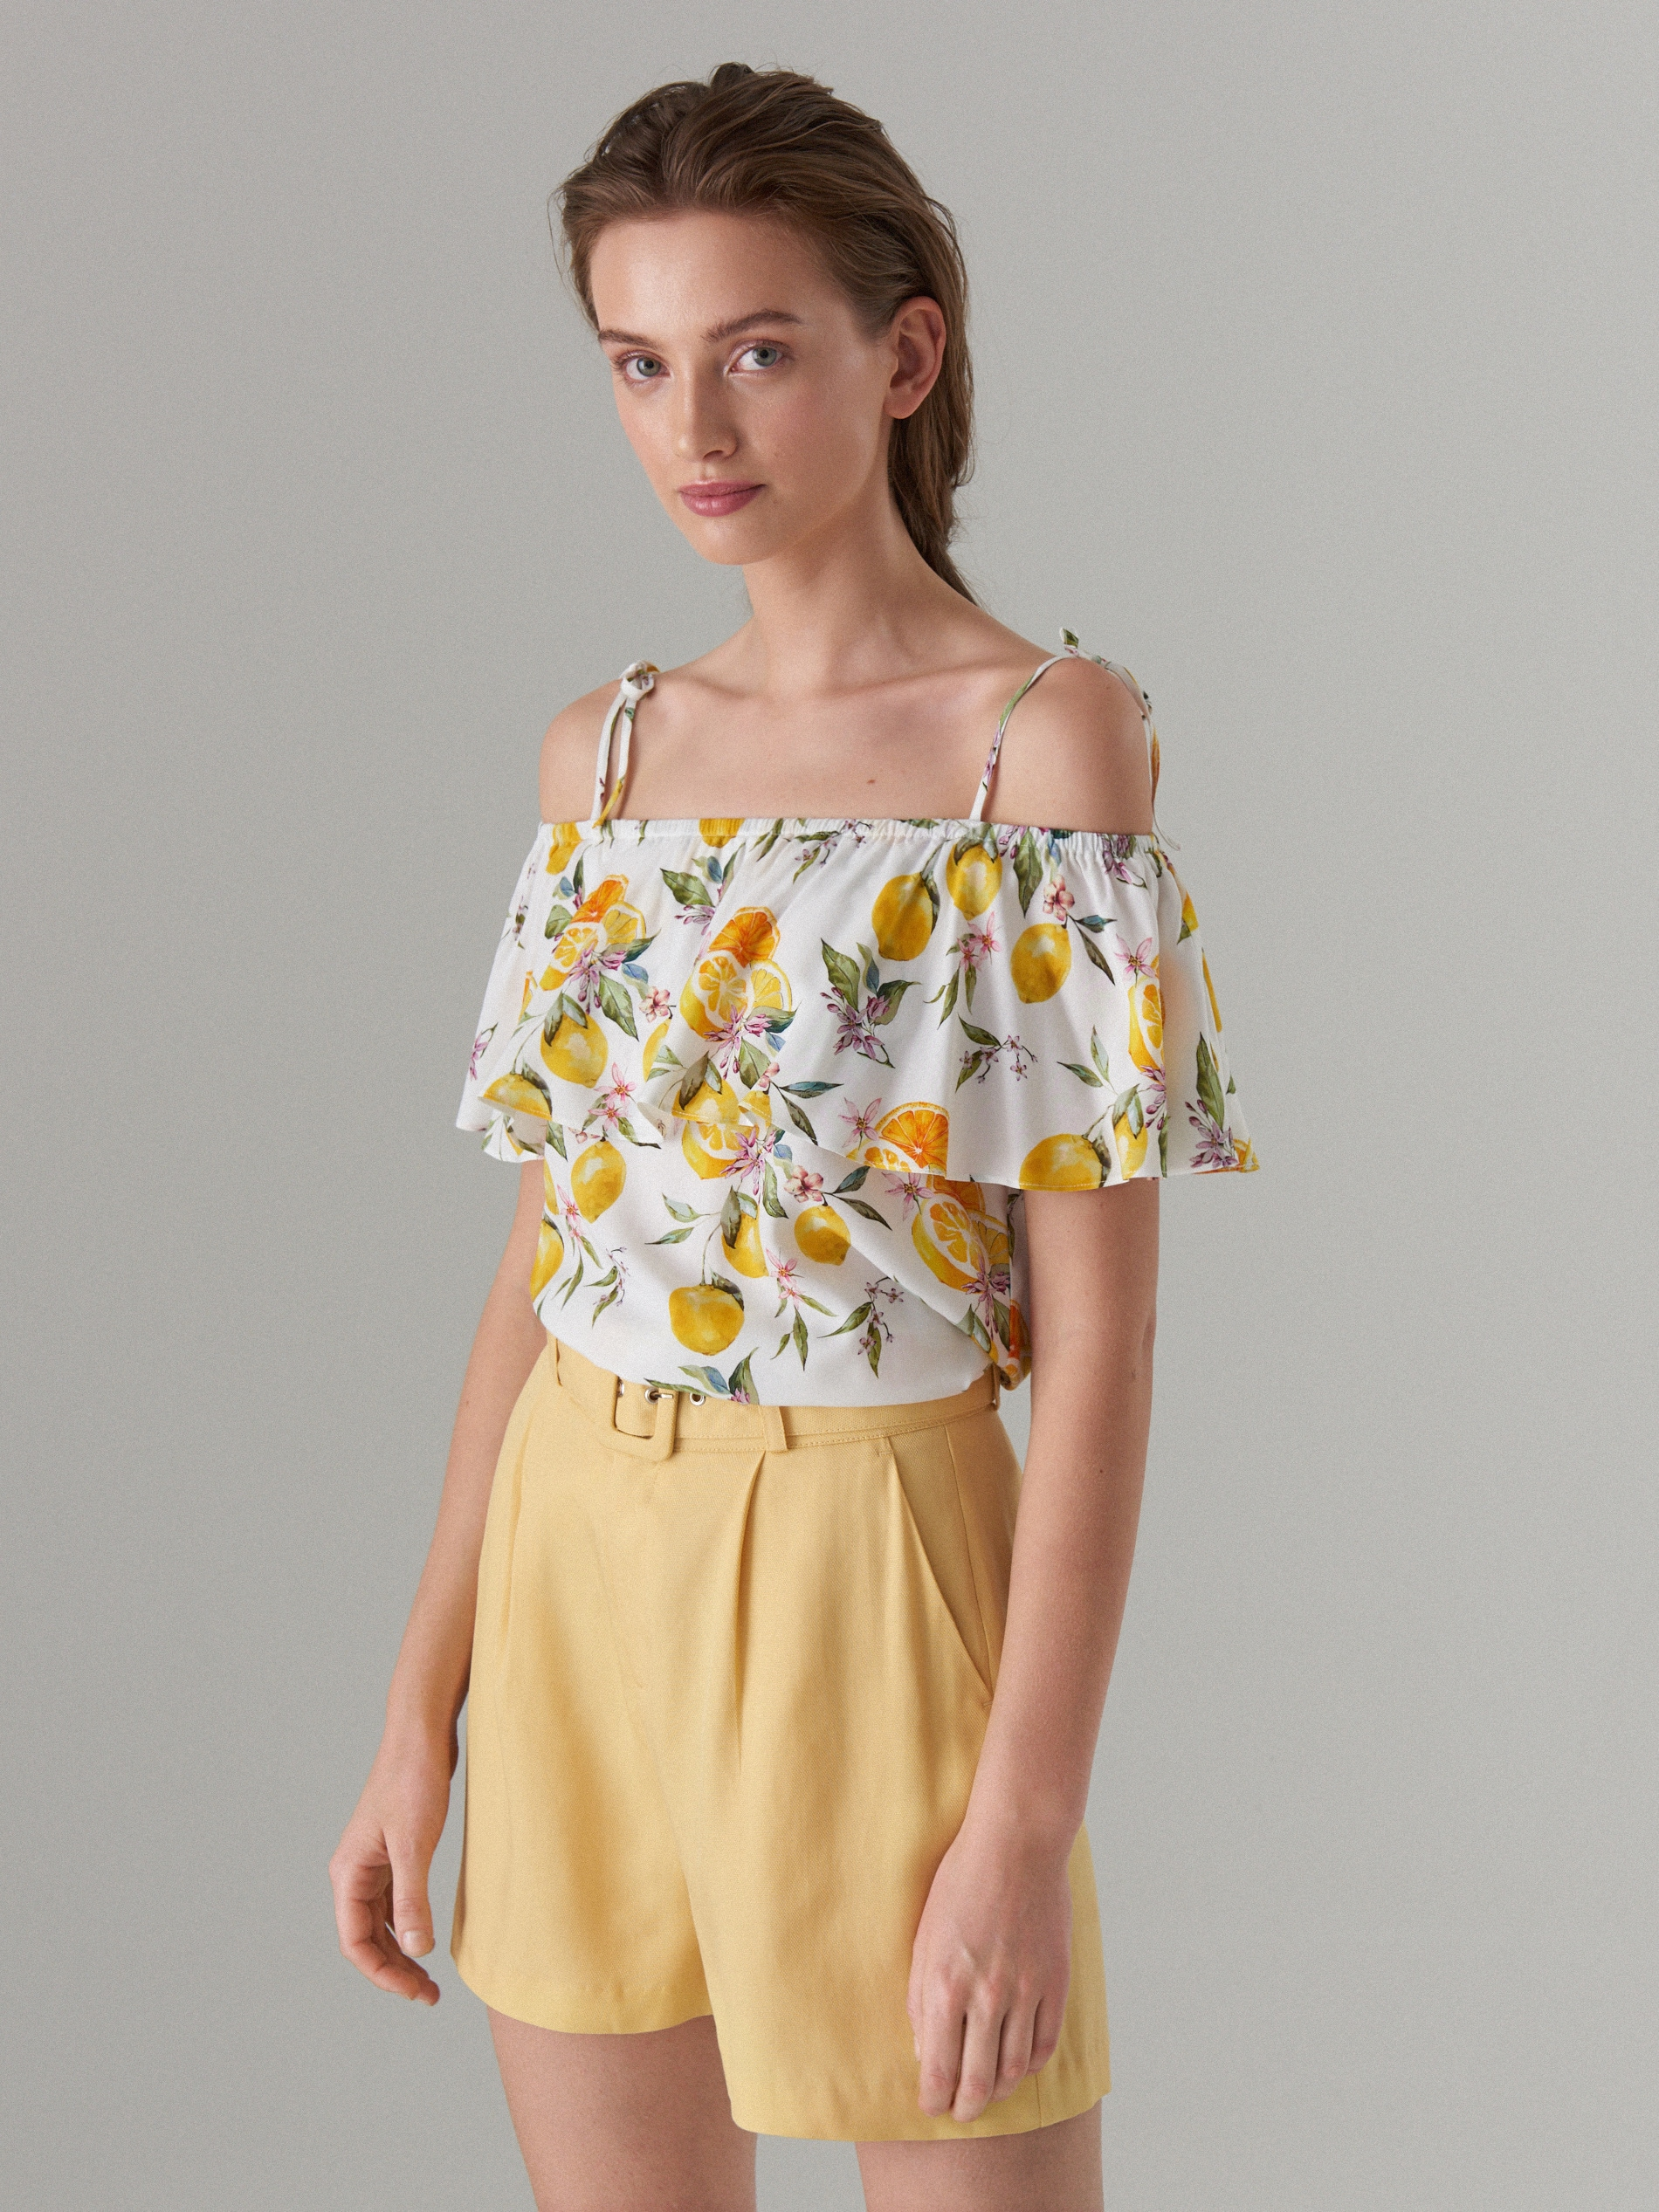 6045edc12a38f6 Printed open shoulder blouse - yellow - VV619-00P - Mohito - 1